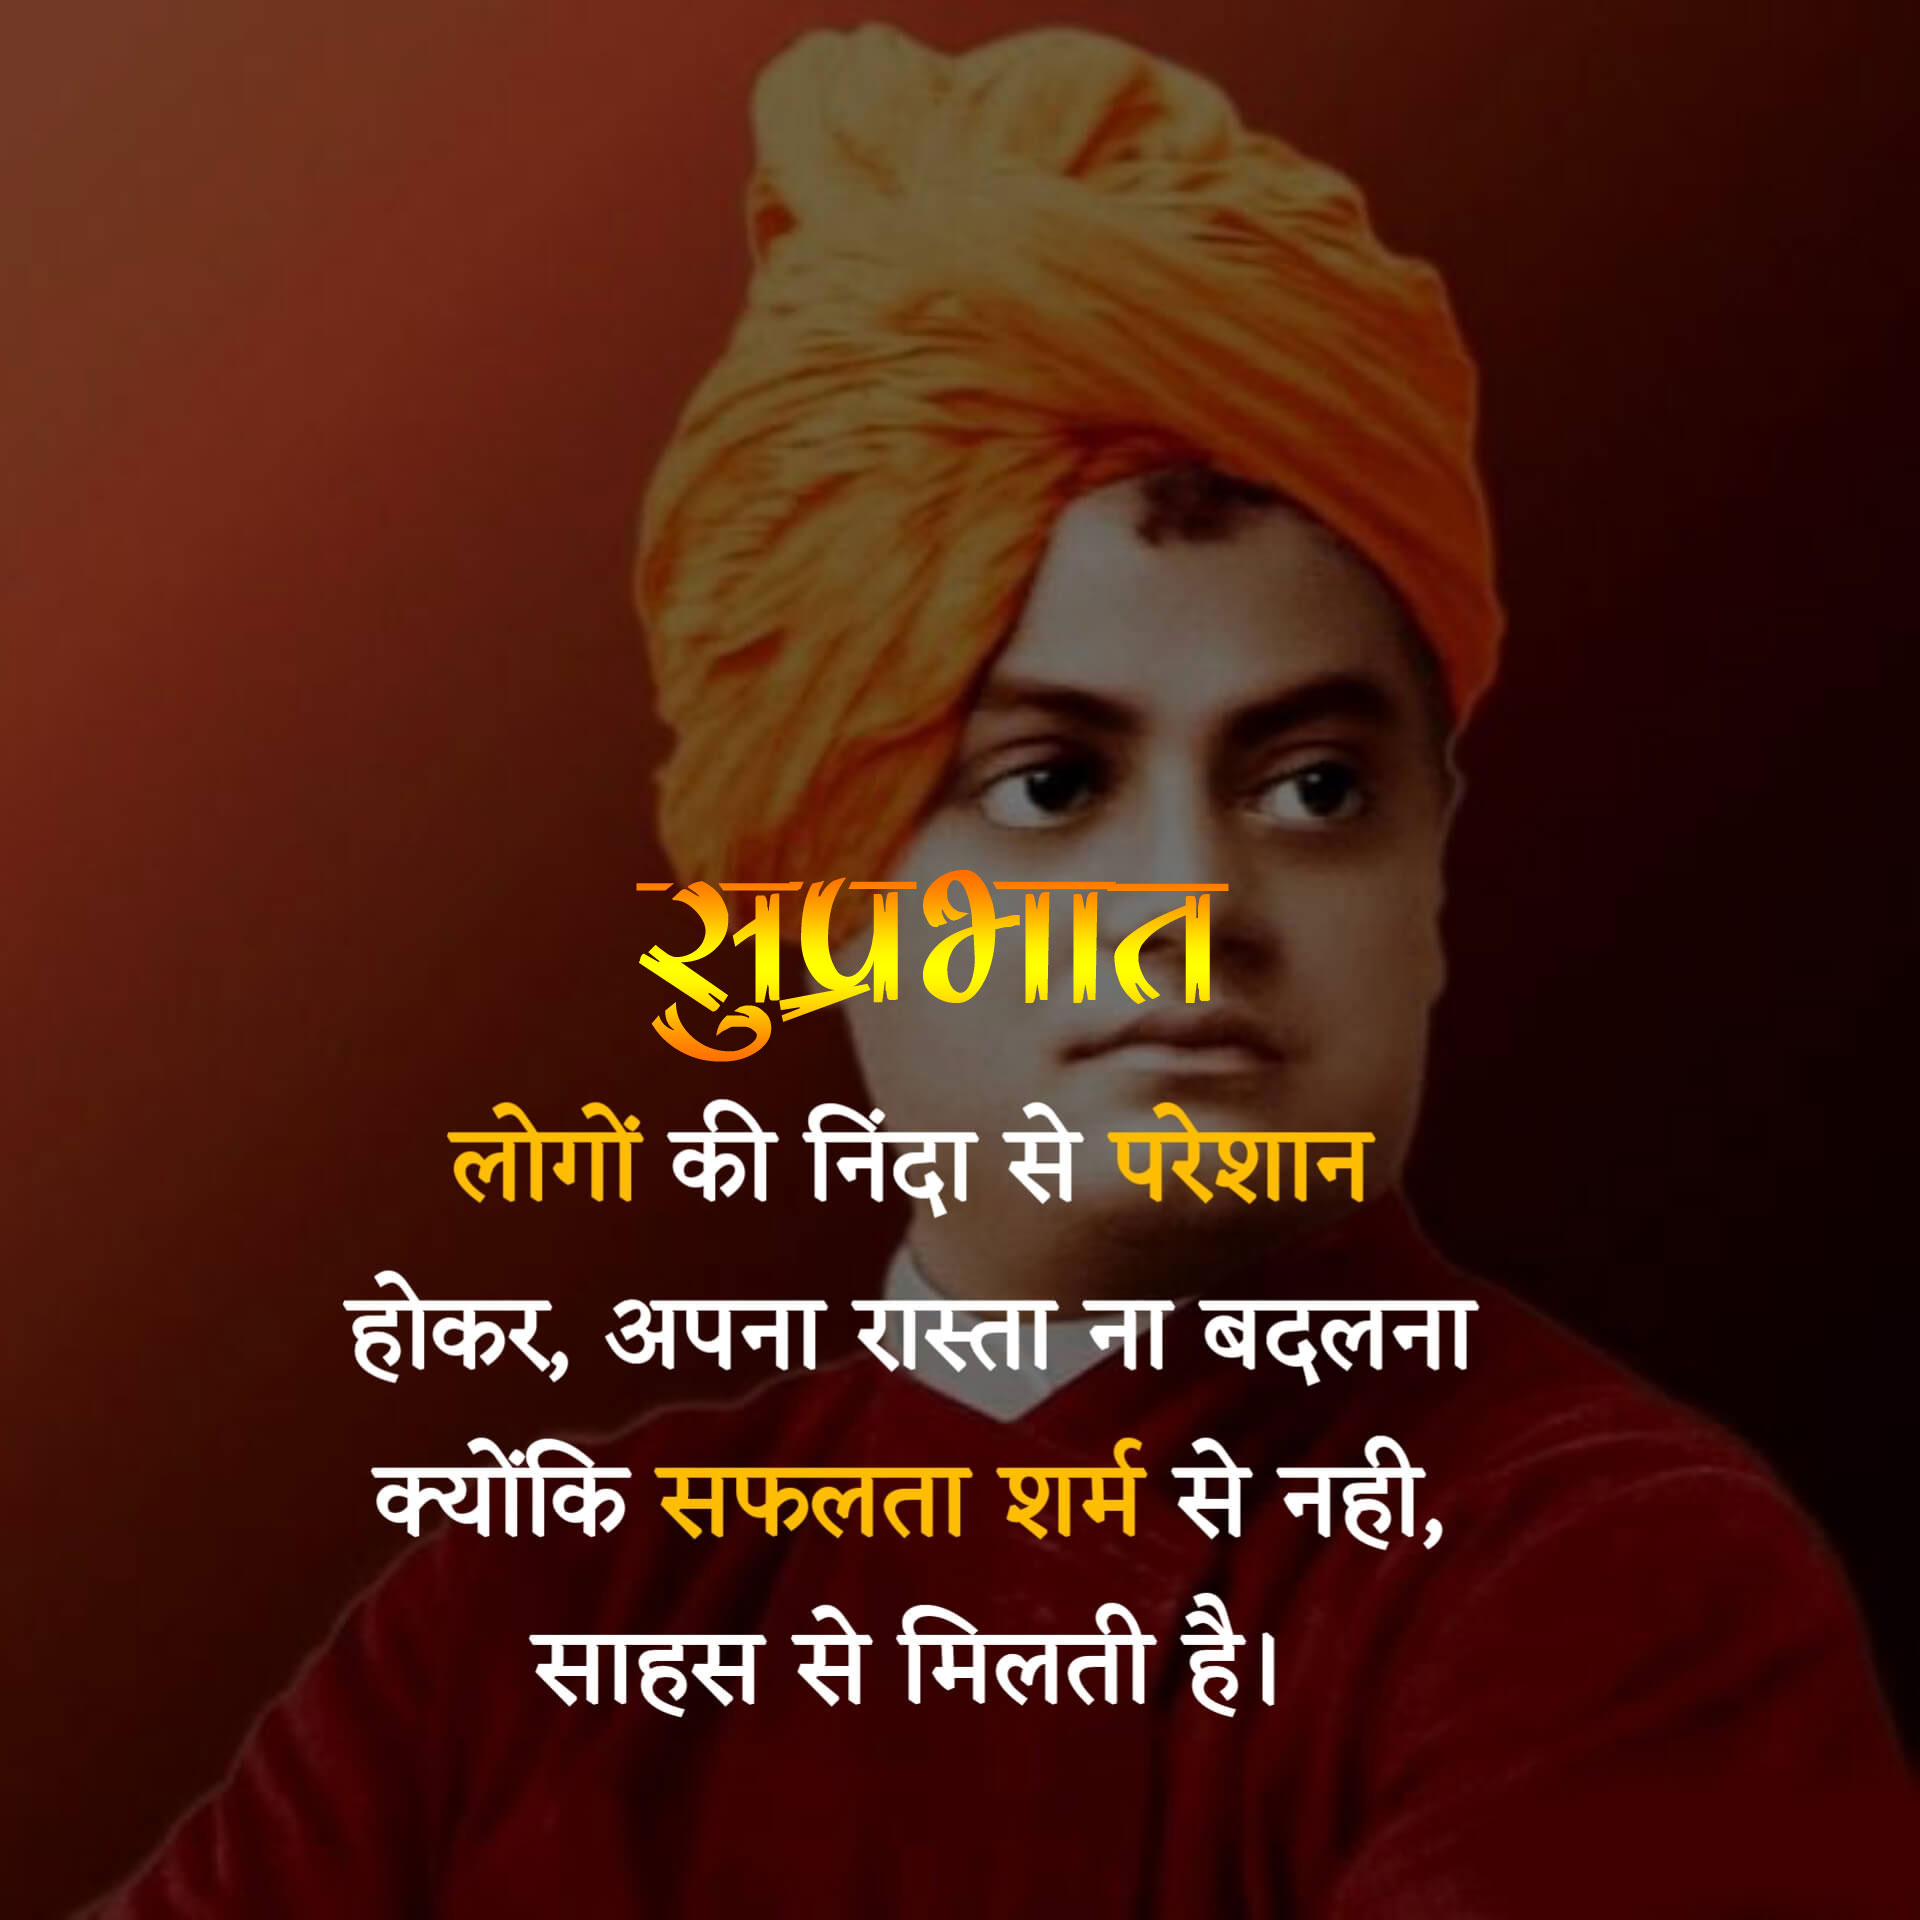 Latest Suprabhat Images for whatsapp dp